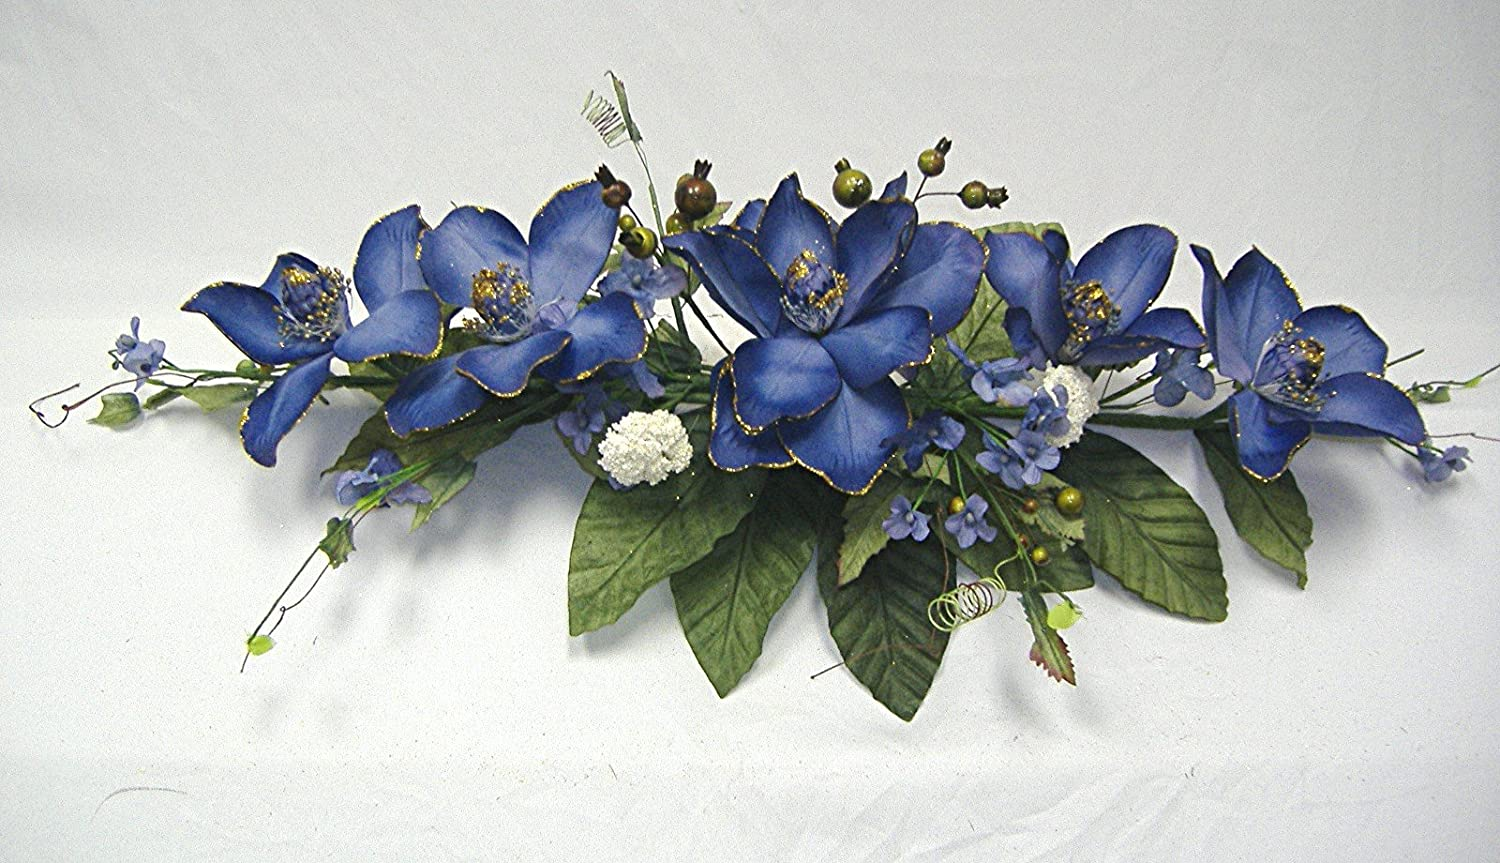 Wedding Flowers 2' Gold Trimmed Magnolia Dogwood Swag Silk Arch Home Party Decor (Blue) Made in China